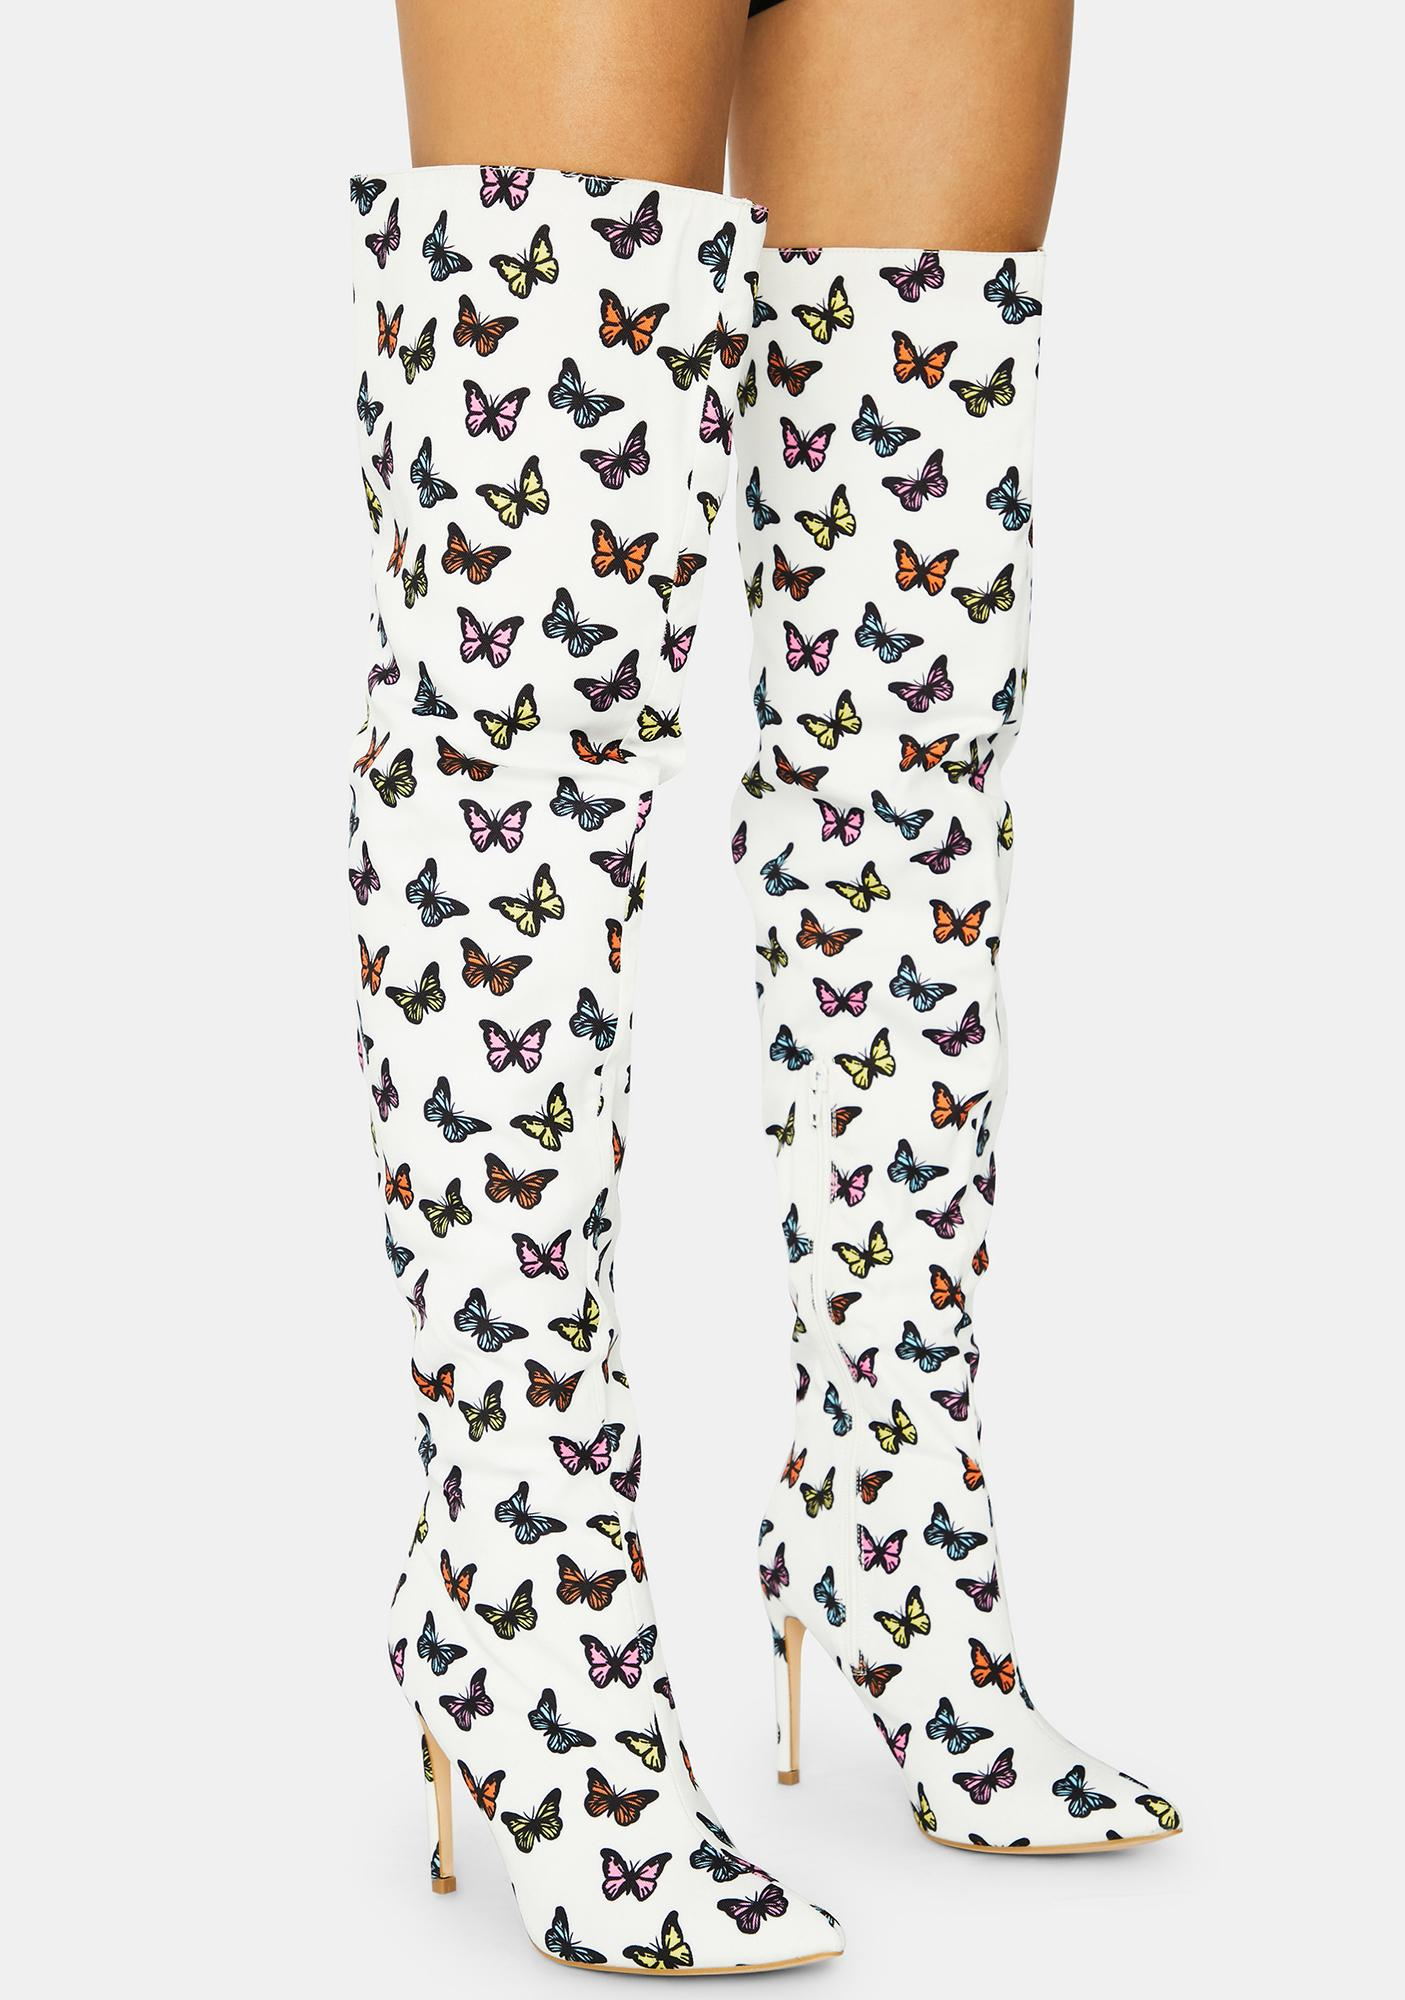 Butterfly Bad Attitude Knee High Boots